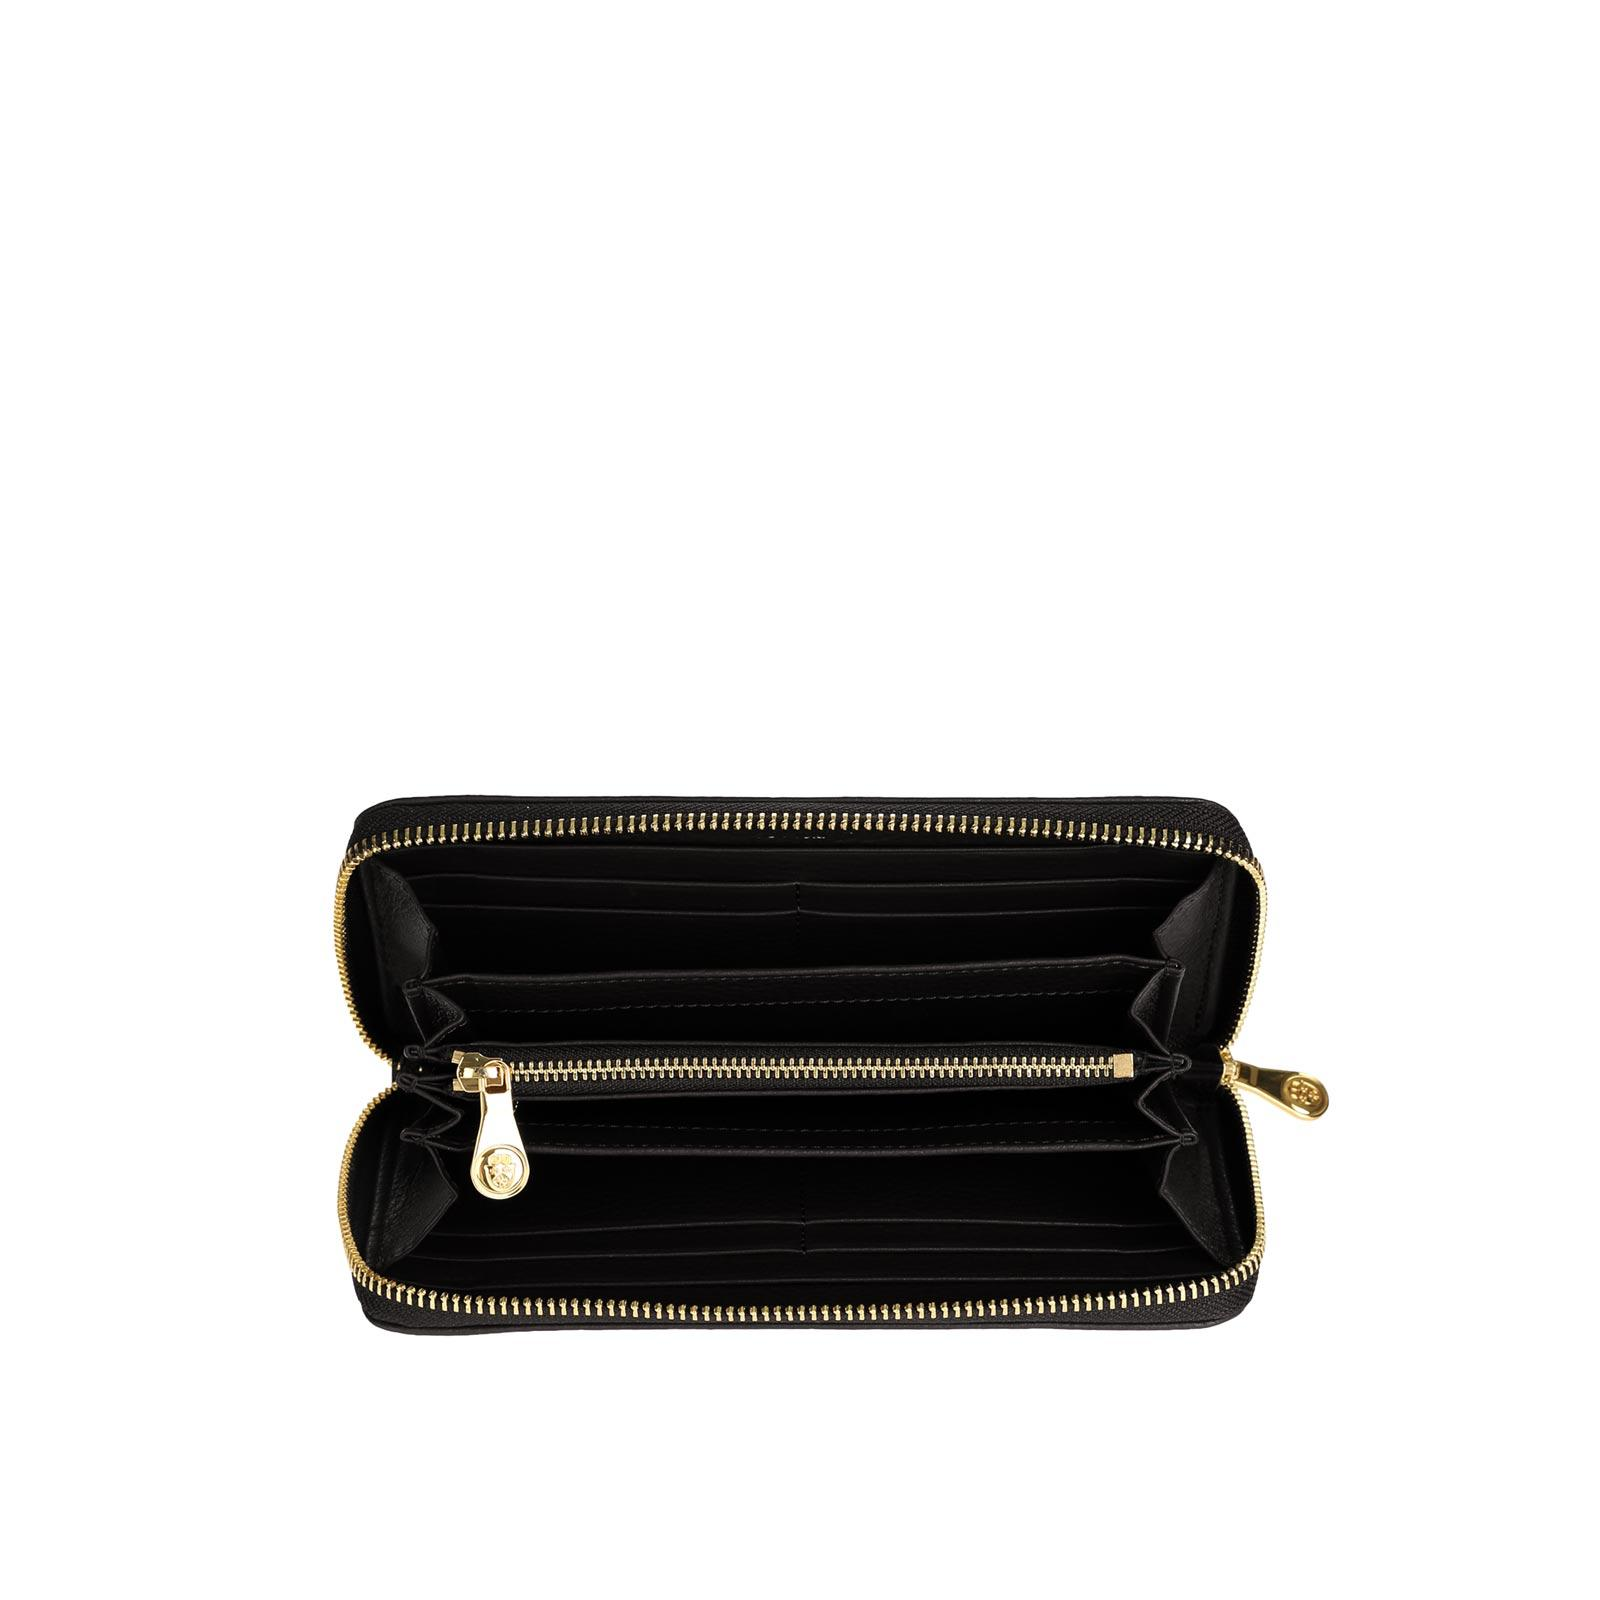 Tiffany Zipped Wallet BLACK